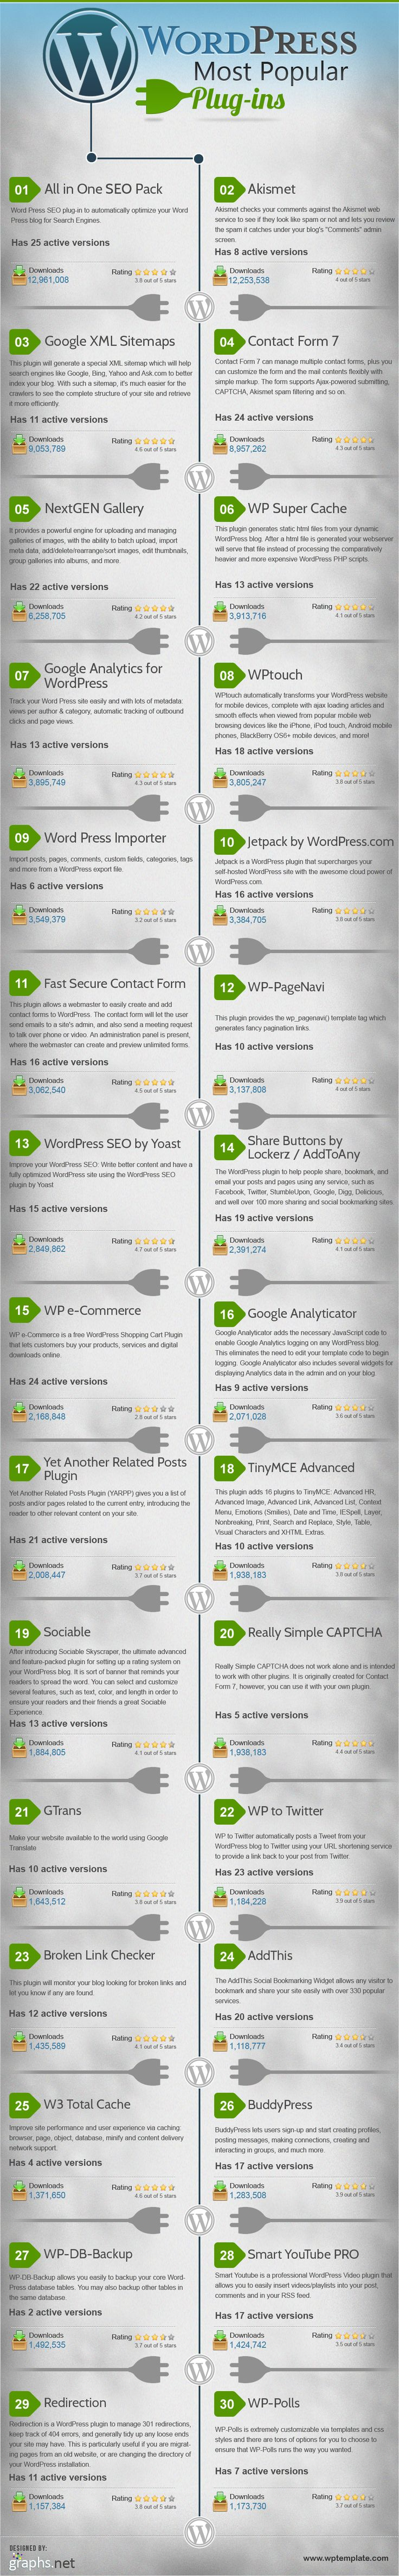 Our infographic today, courtesy of WP Template.com, is all about the 30 most popular WordPress plugins, as determined by their total number of downloads. Hopefully, if you are planning to set up a WordPress site for the first time, this infographic will give you some ideas and inspiration for which plugins to consider using.